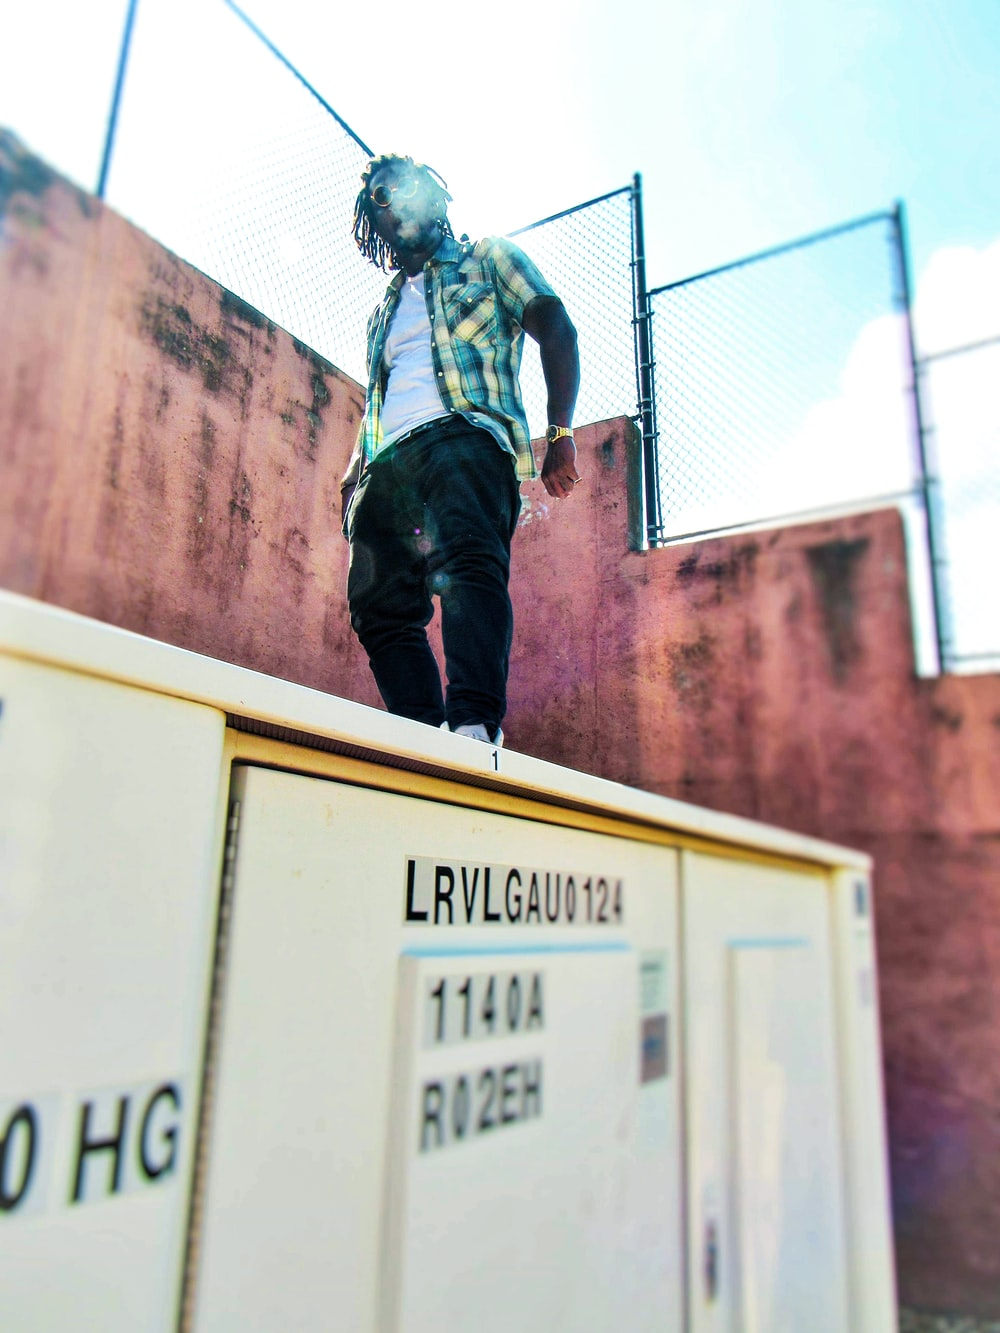 man standing on top of box during daytime